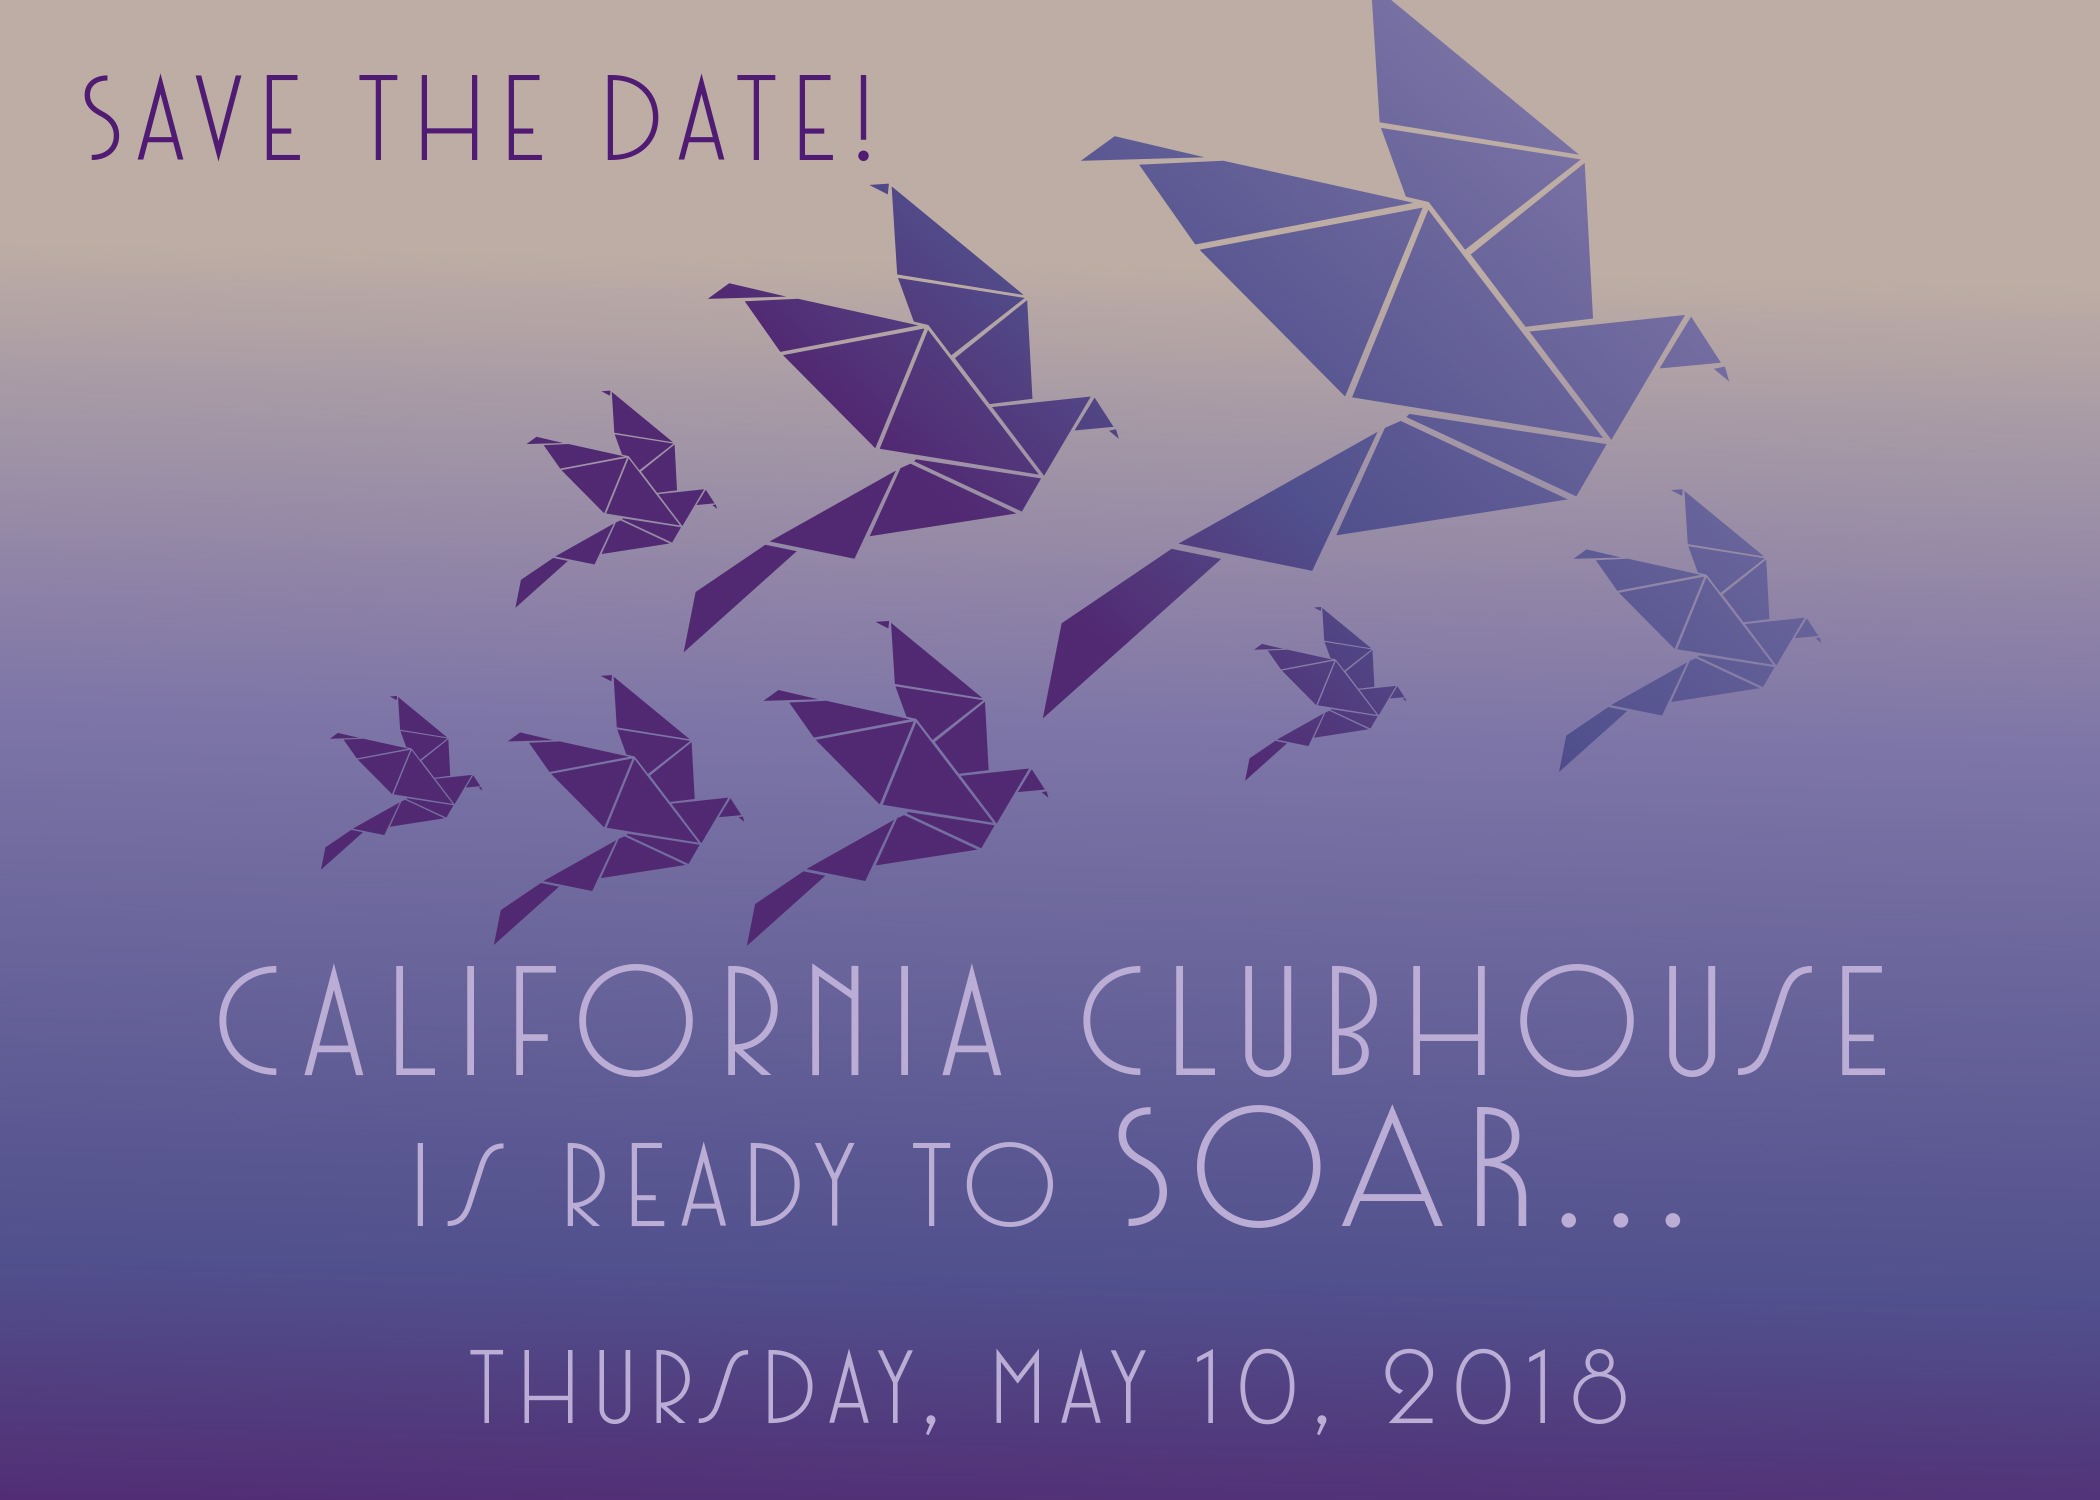 CA_Clubhouse_SaveDate_Front